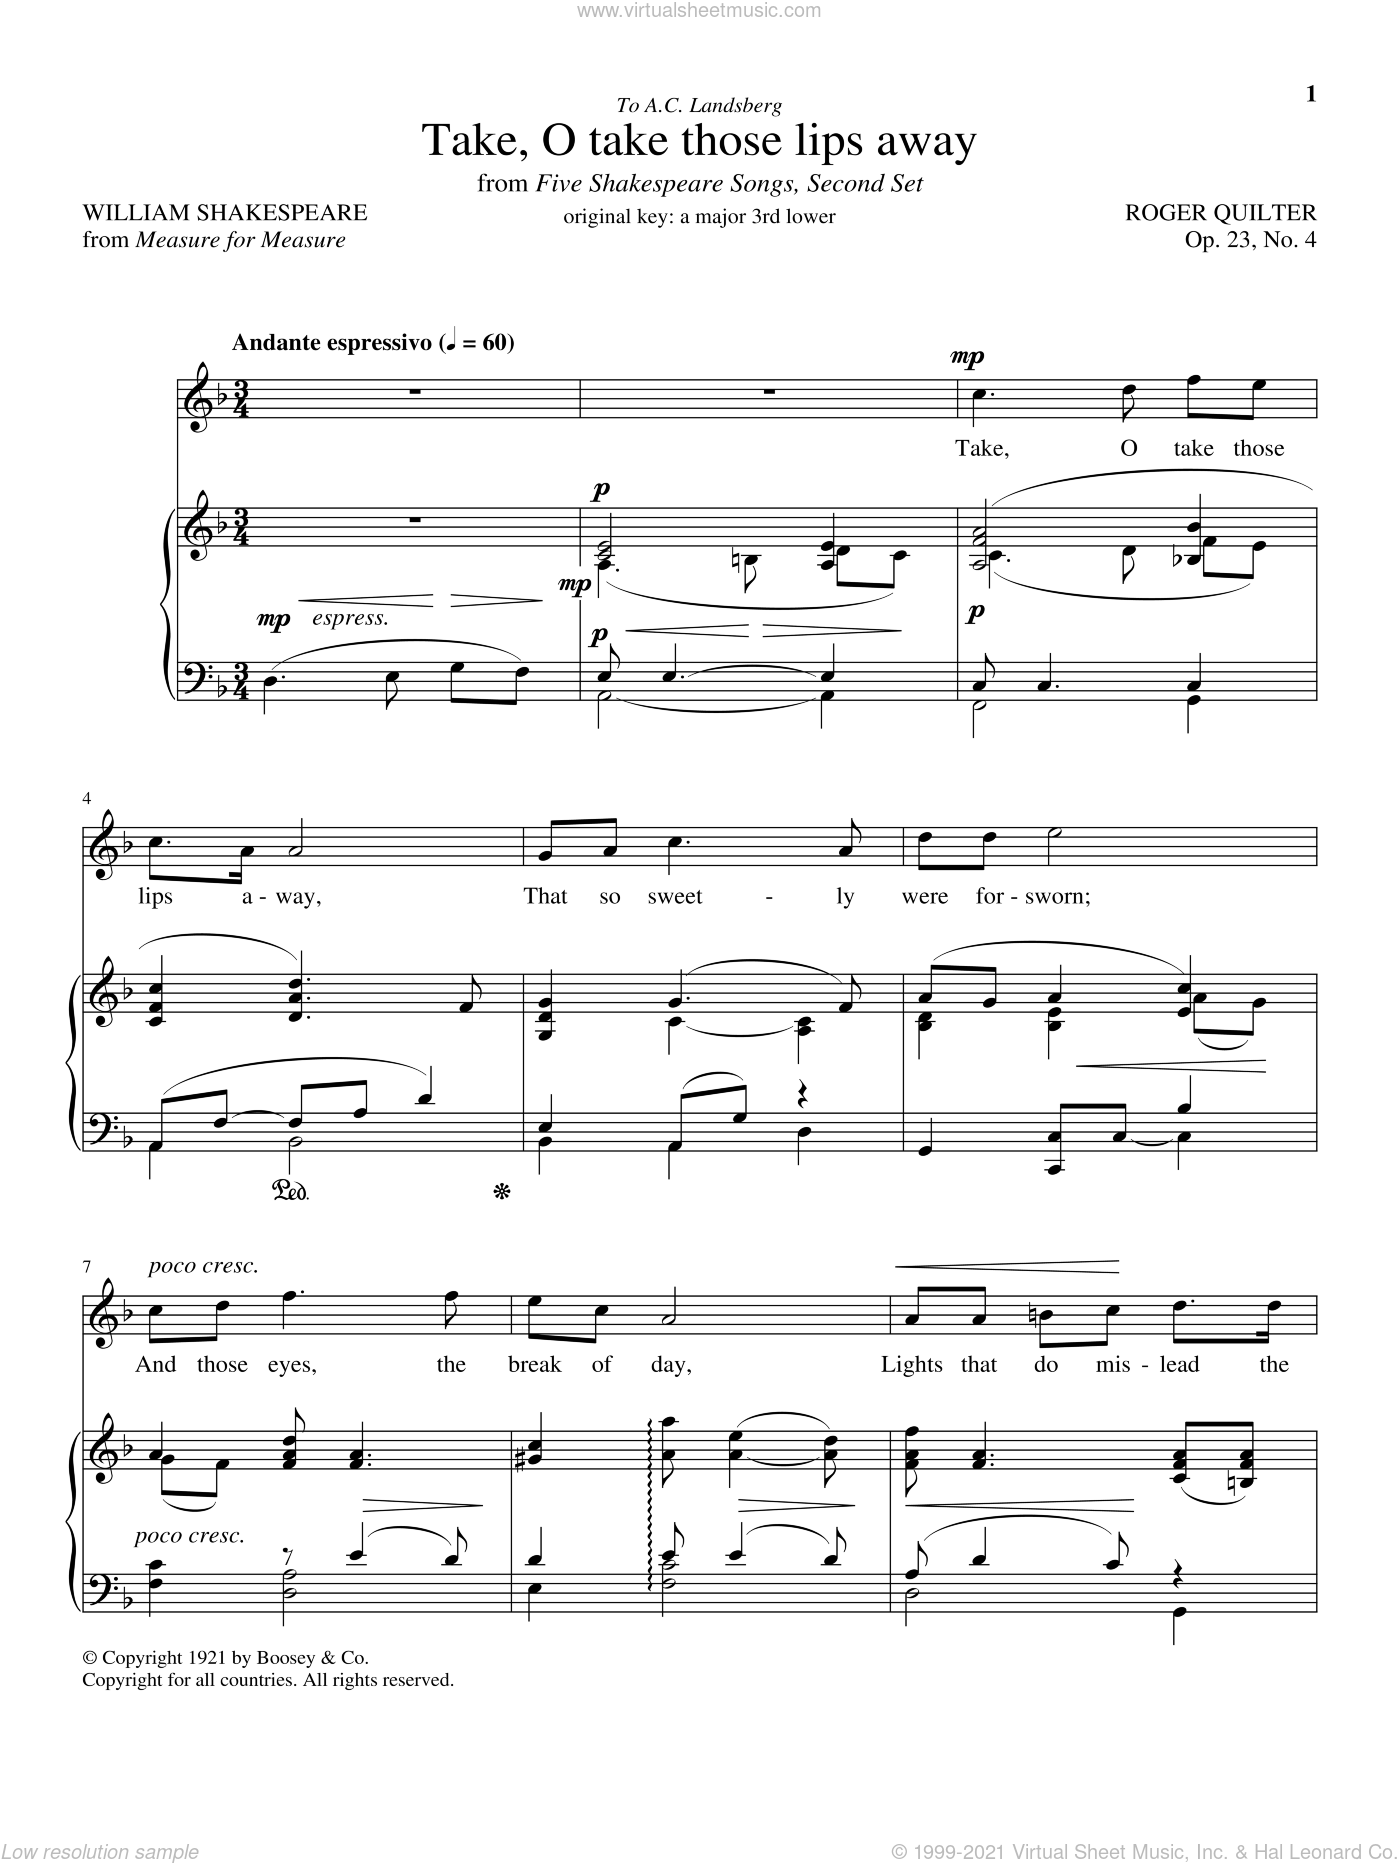 Take, O Take Those Lips Away, Op. 23, No. 4 sheet music for voice and piano (Tenor) by William Shakespeare and Roger Quilter, classical score, intermediate skill level